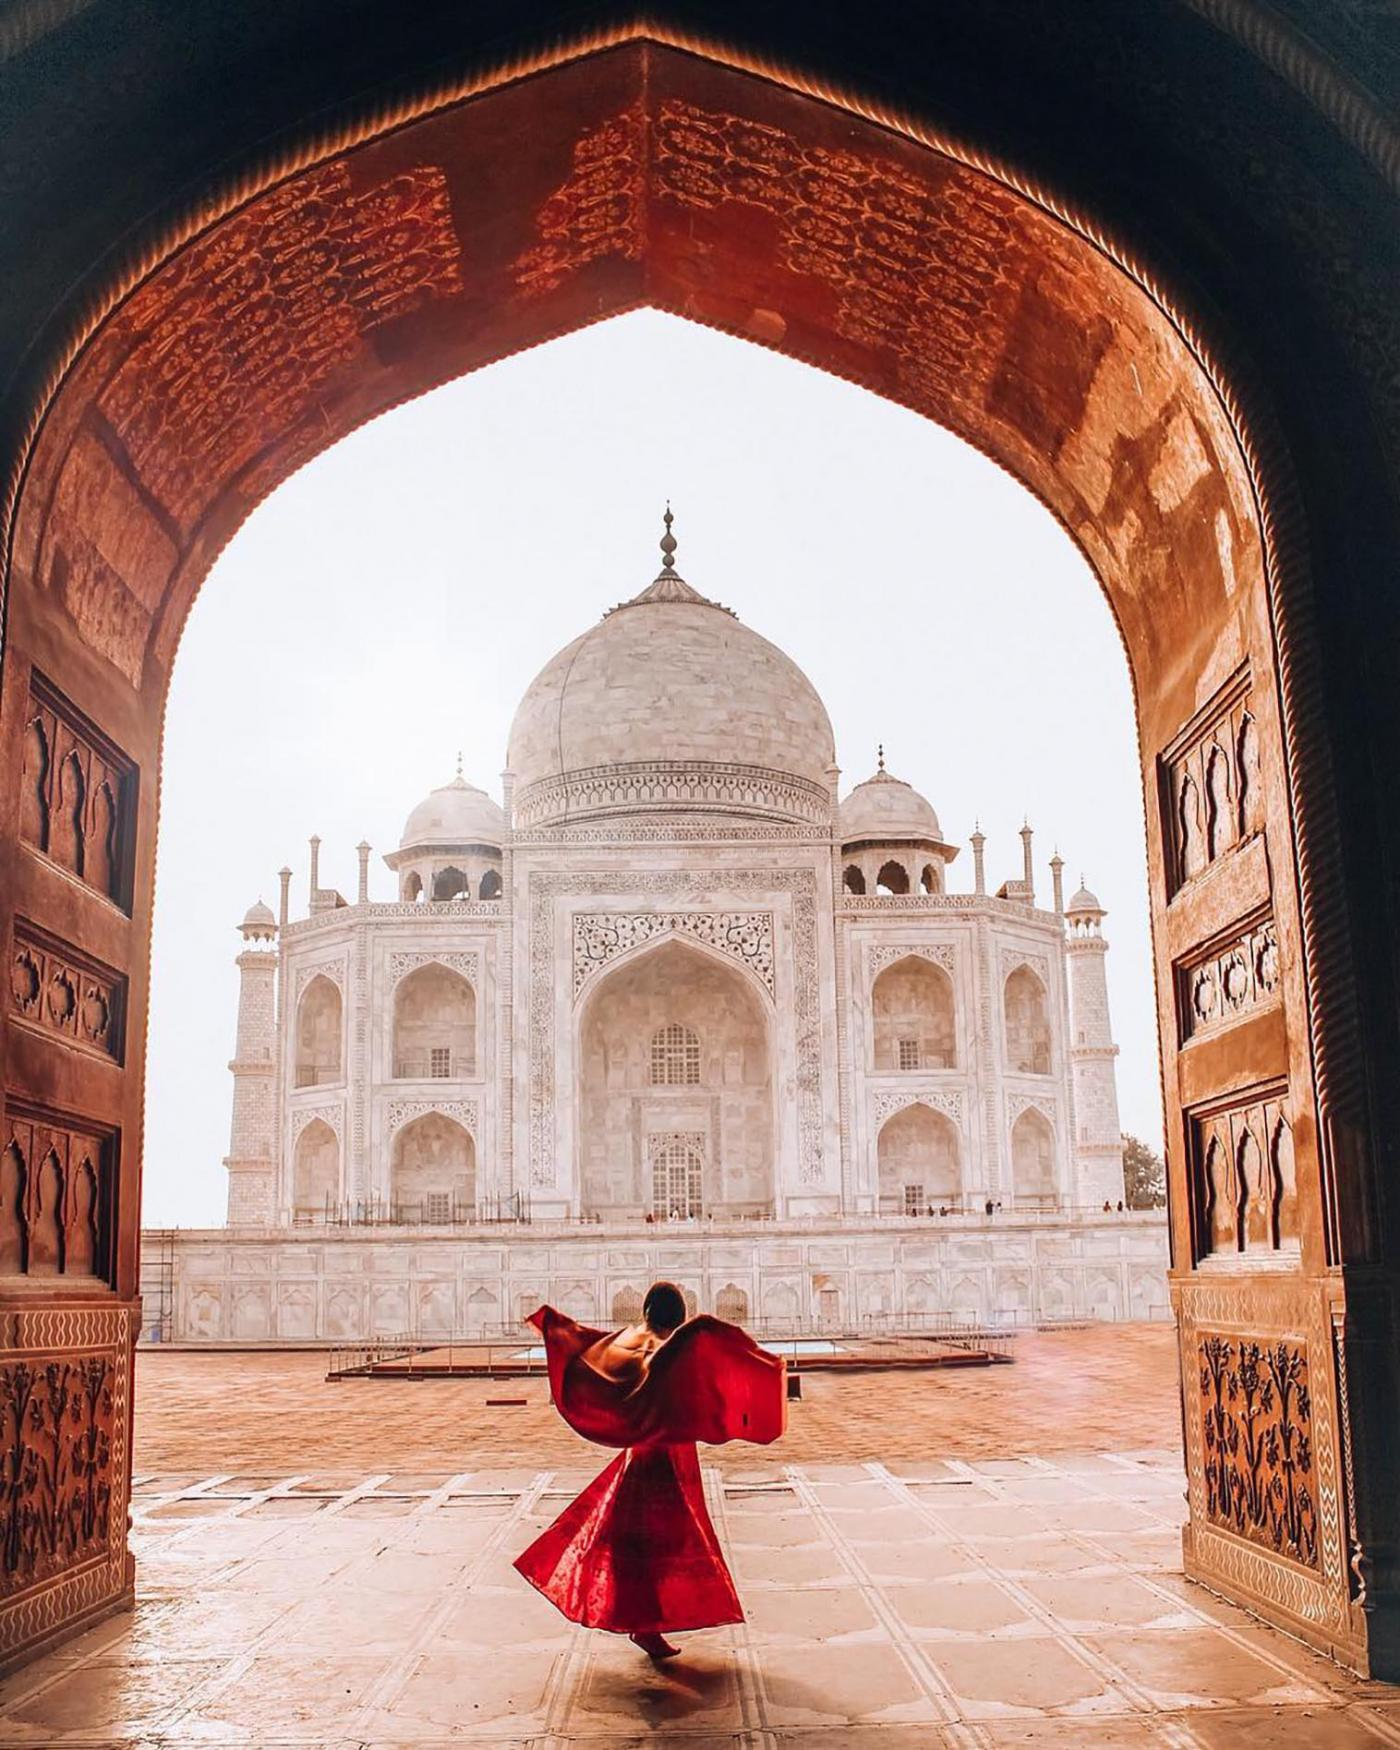 January 15 - January 25, 2020 - 10 Nights / 11 DaysGroup Size: 16*9 spots left**VISA REQUIRED*Immerse yourself in culture and join us as we explore the pink city and the city of lakes in Rajasthan, watch the sunrise in Agra overlooking the Taj Mahal, and get ready for the most experiential trip of your life!Here's a little taste of what you can expect:*Shared Hotel Accommodations**Curated Dining Options Paired with Local Delicacies**Stroll through Golden Palaces + Historic Forts**Take an Authentic Cooking Class**And a Squad of Girls to Keep You Company!*